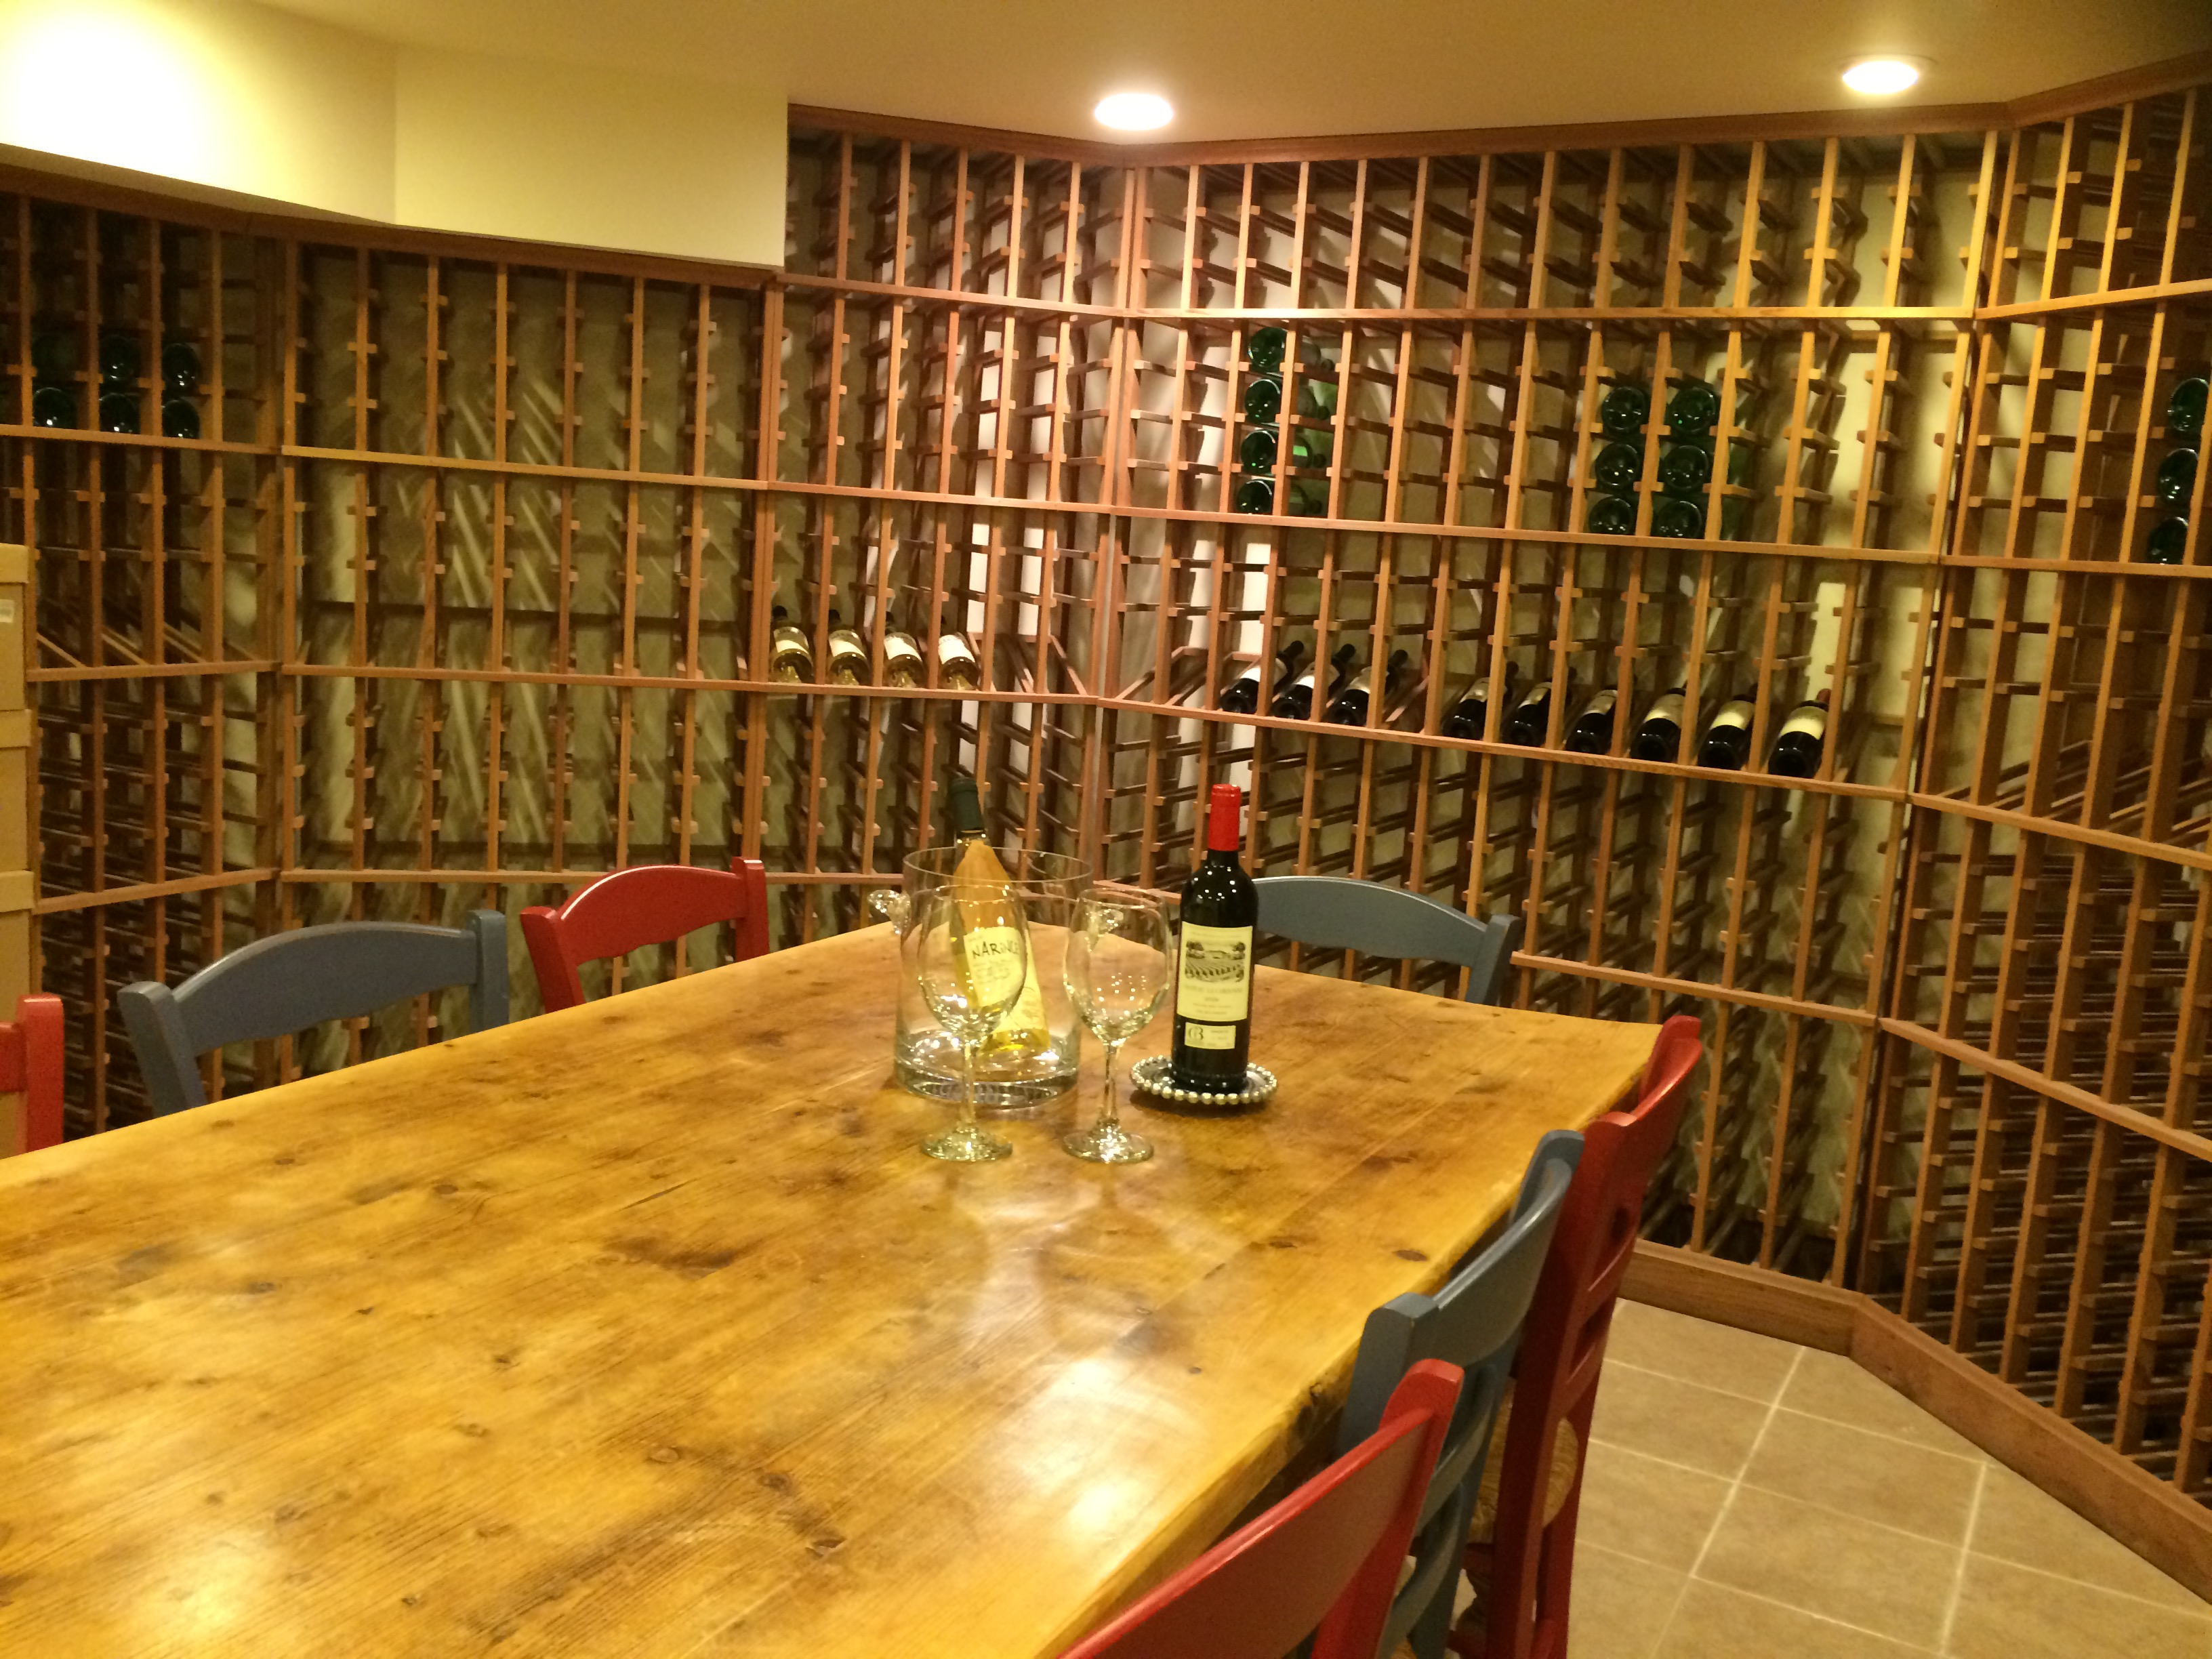 and then there is the wine cellar